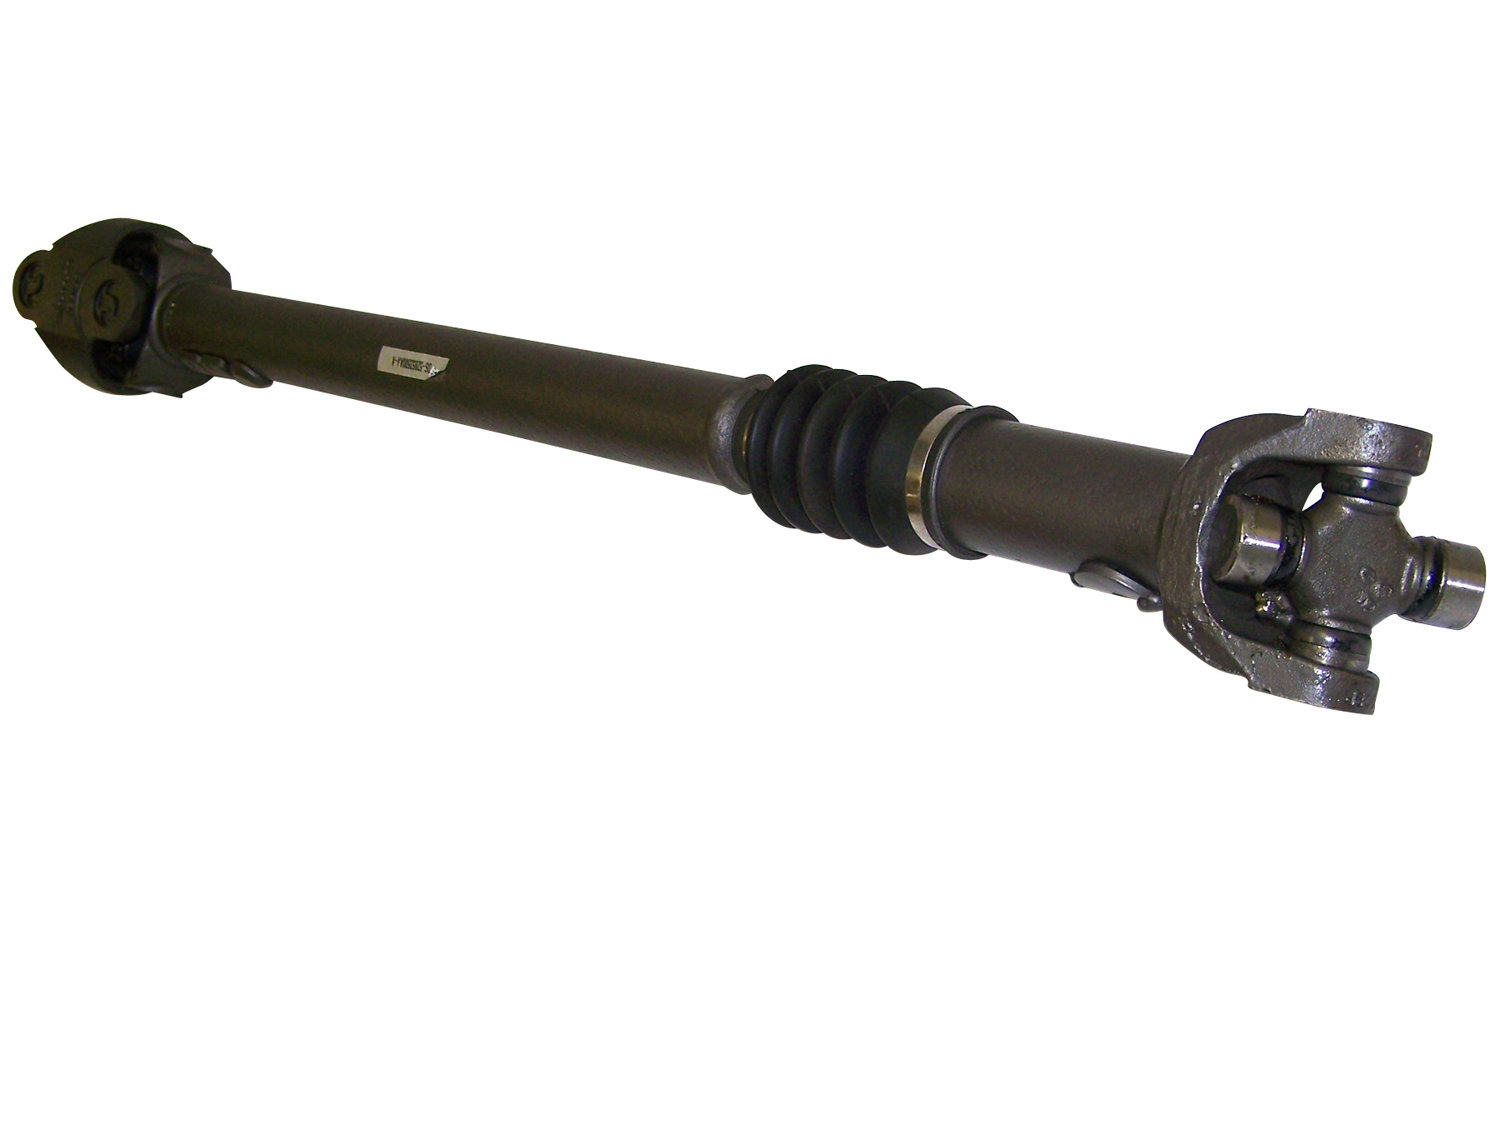 WJ 4.8 Jeep Grand Cherokee Front Propshaft